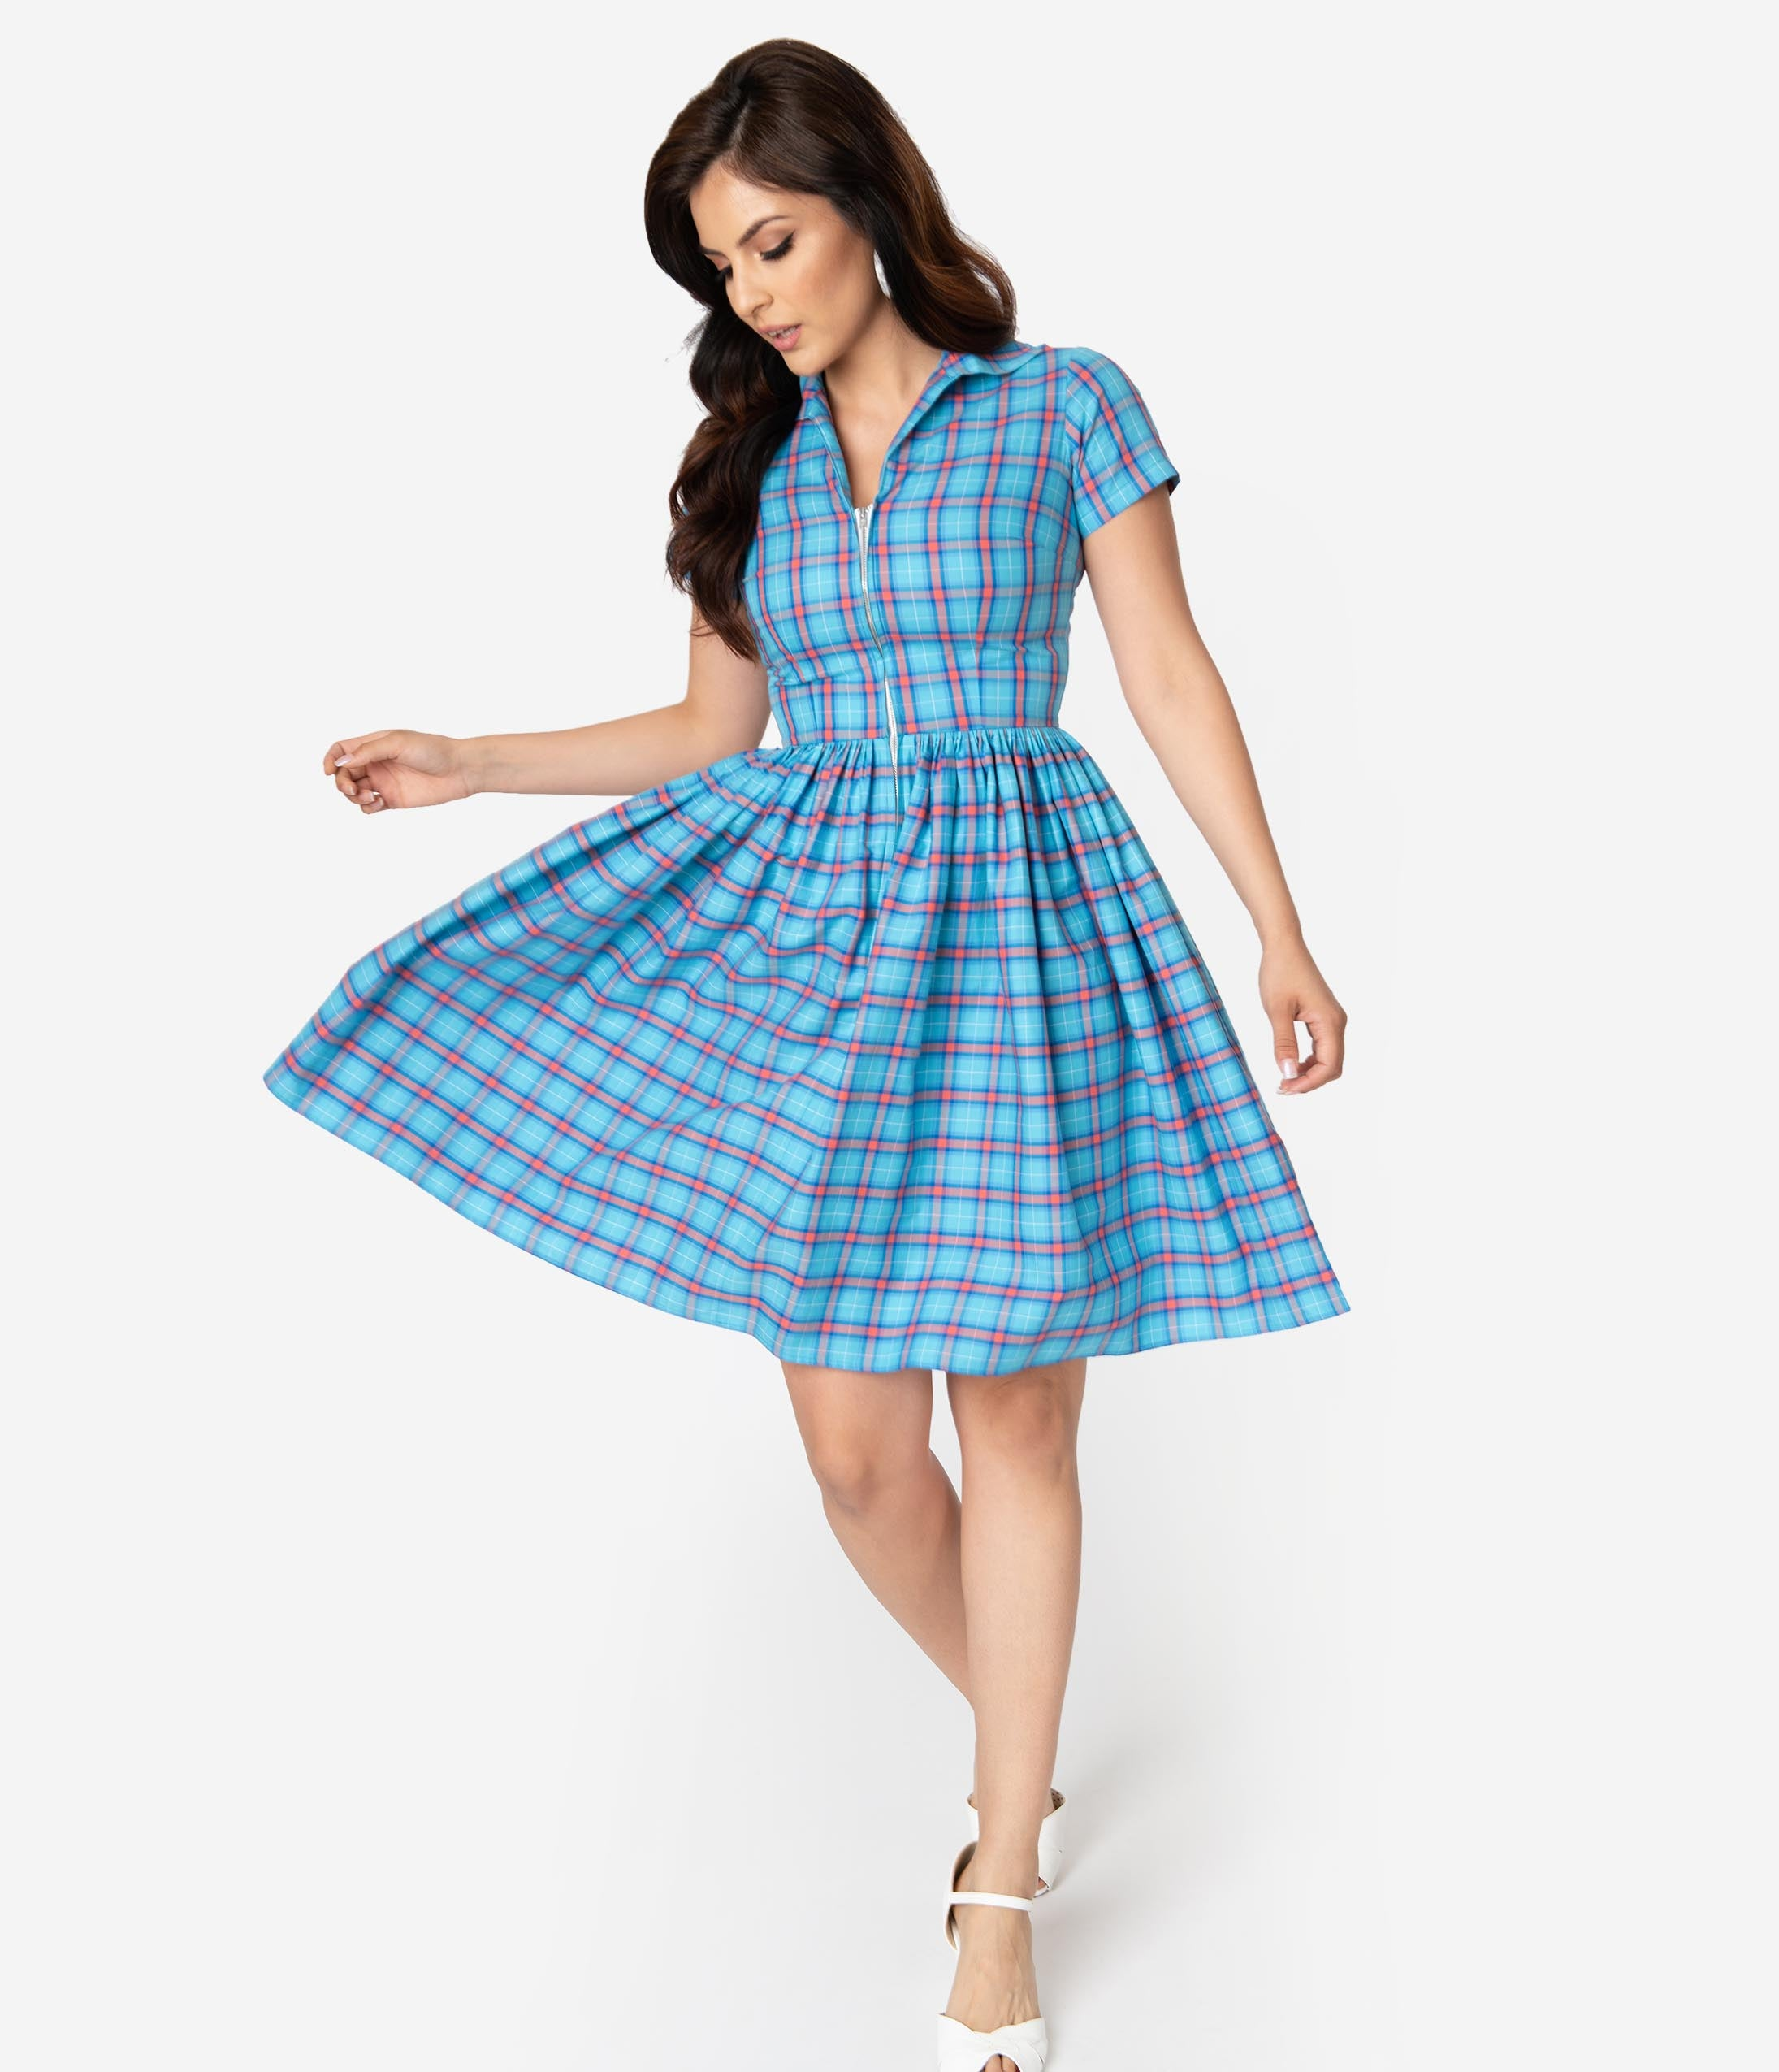 Fifties Dresses : 1950s Style Swing to Wiggle Dresses Bernie Dexter 1950S Style True Blue  Coral Plaid Cotton Short Sleeve Francis Swing Dress $128.00 AT vintagedancer.com